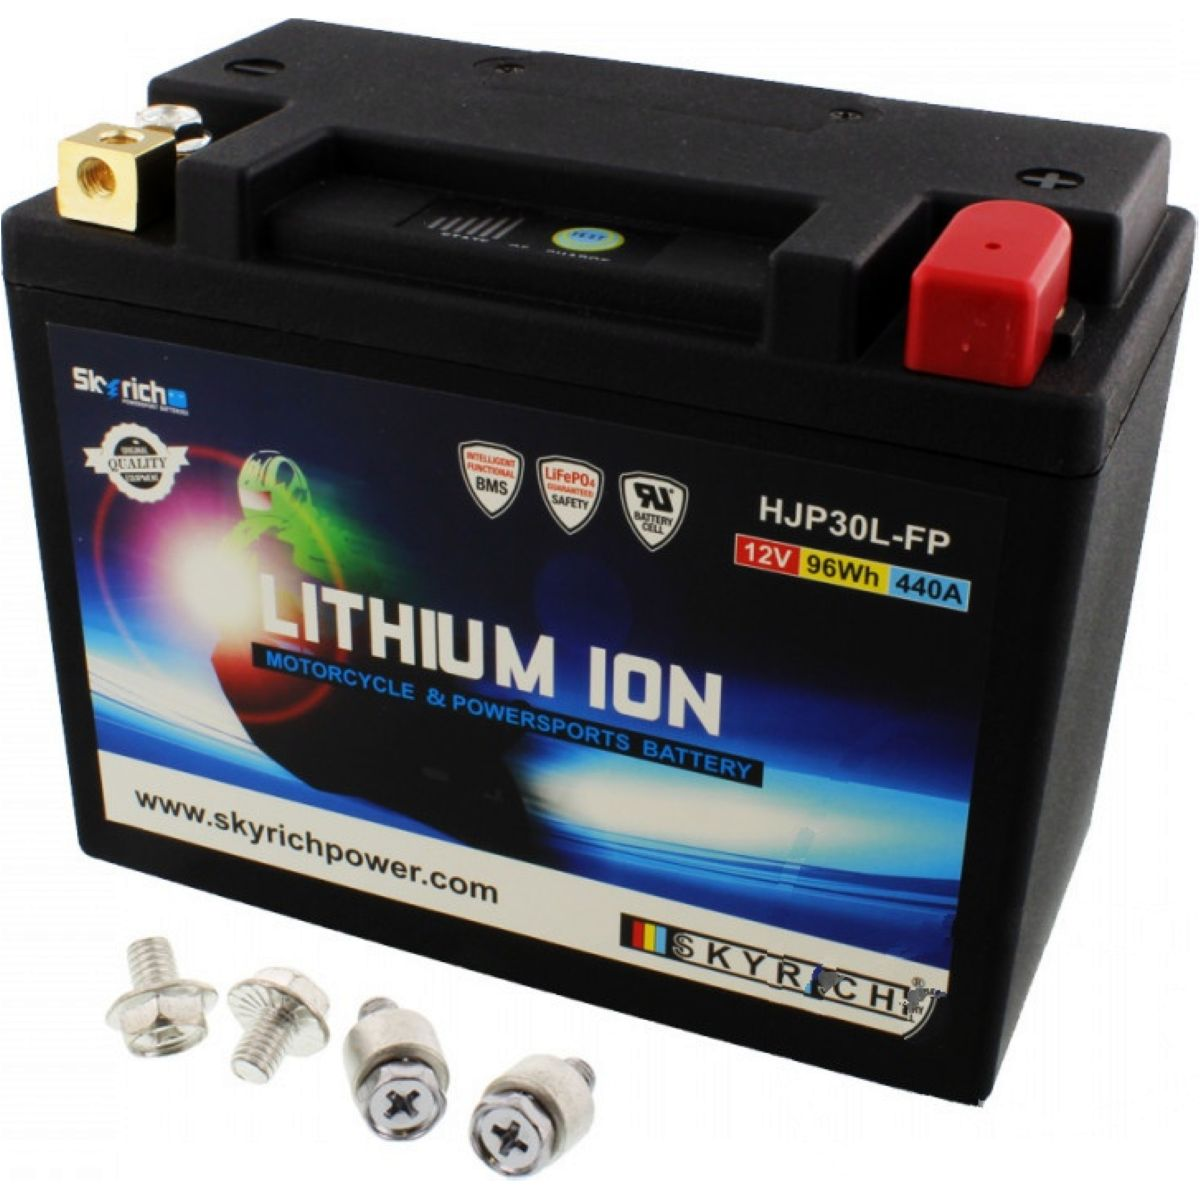 BATTERY MOTORCYCLE LTM30L SKYRICH LITHIUM ION WITH VOLTAGE DISPLAY AND OVERCHARGE PROTECTION